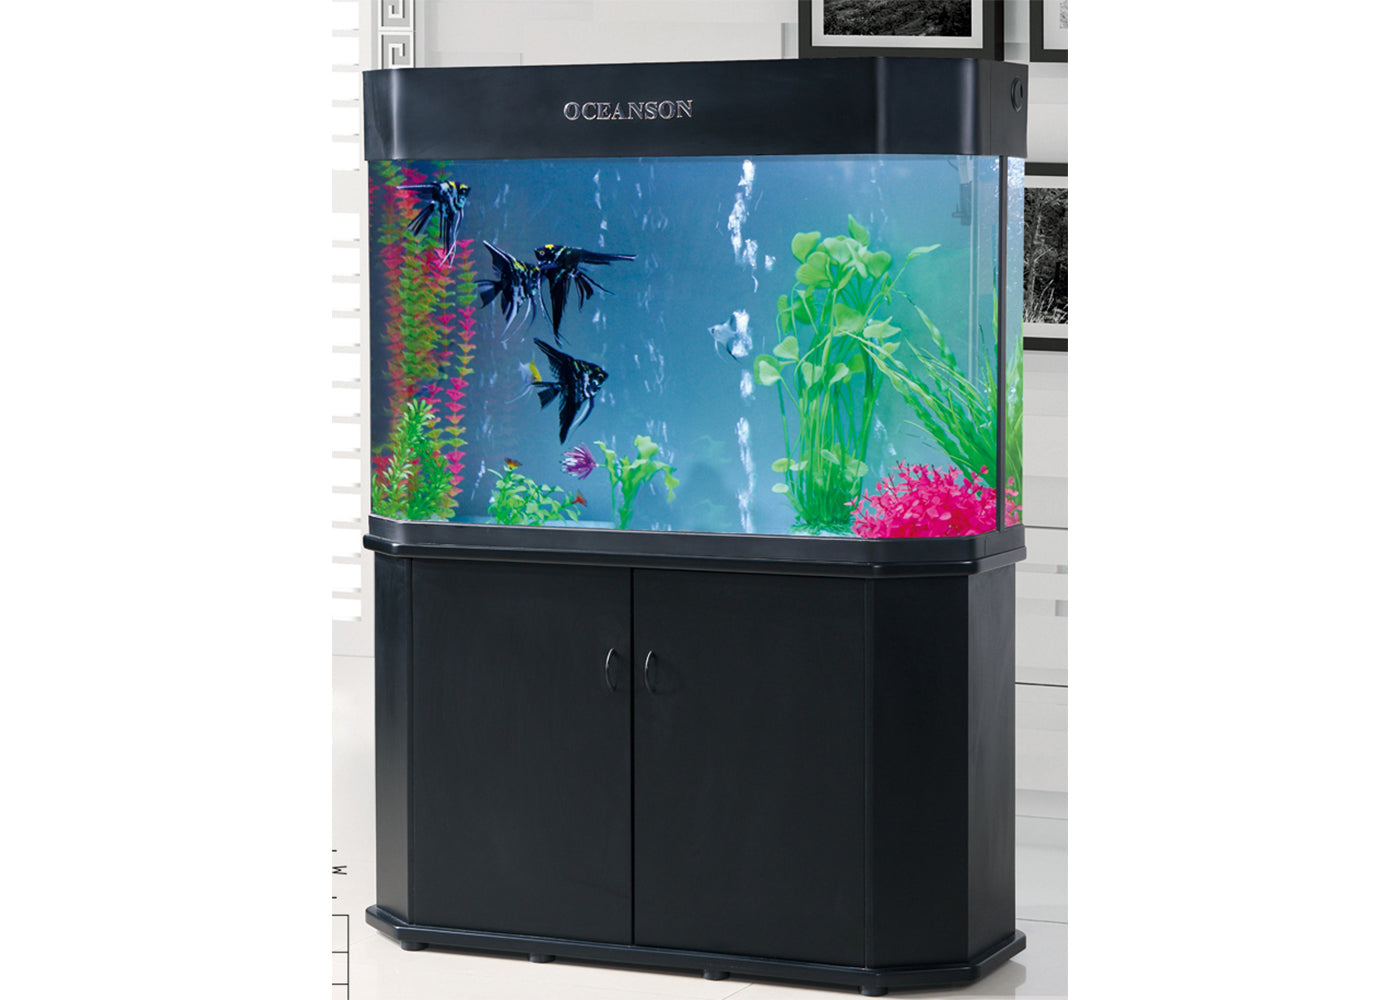 Oceanson EH135 Aquarium and Cabinet